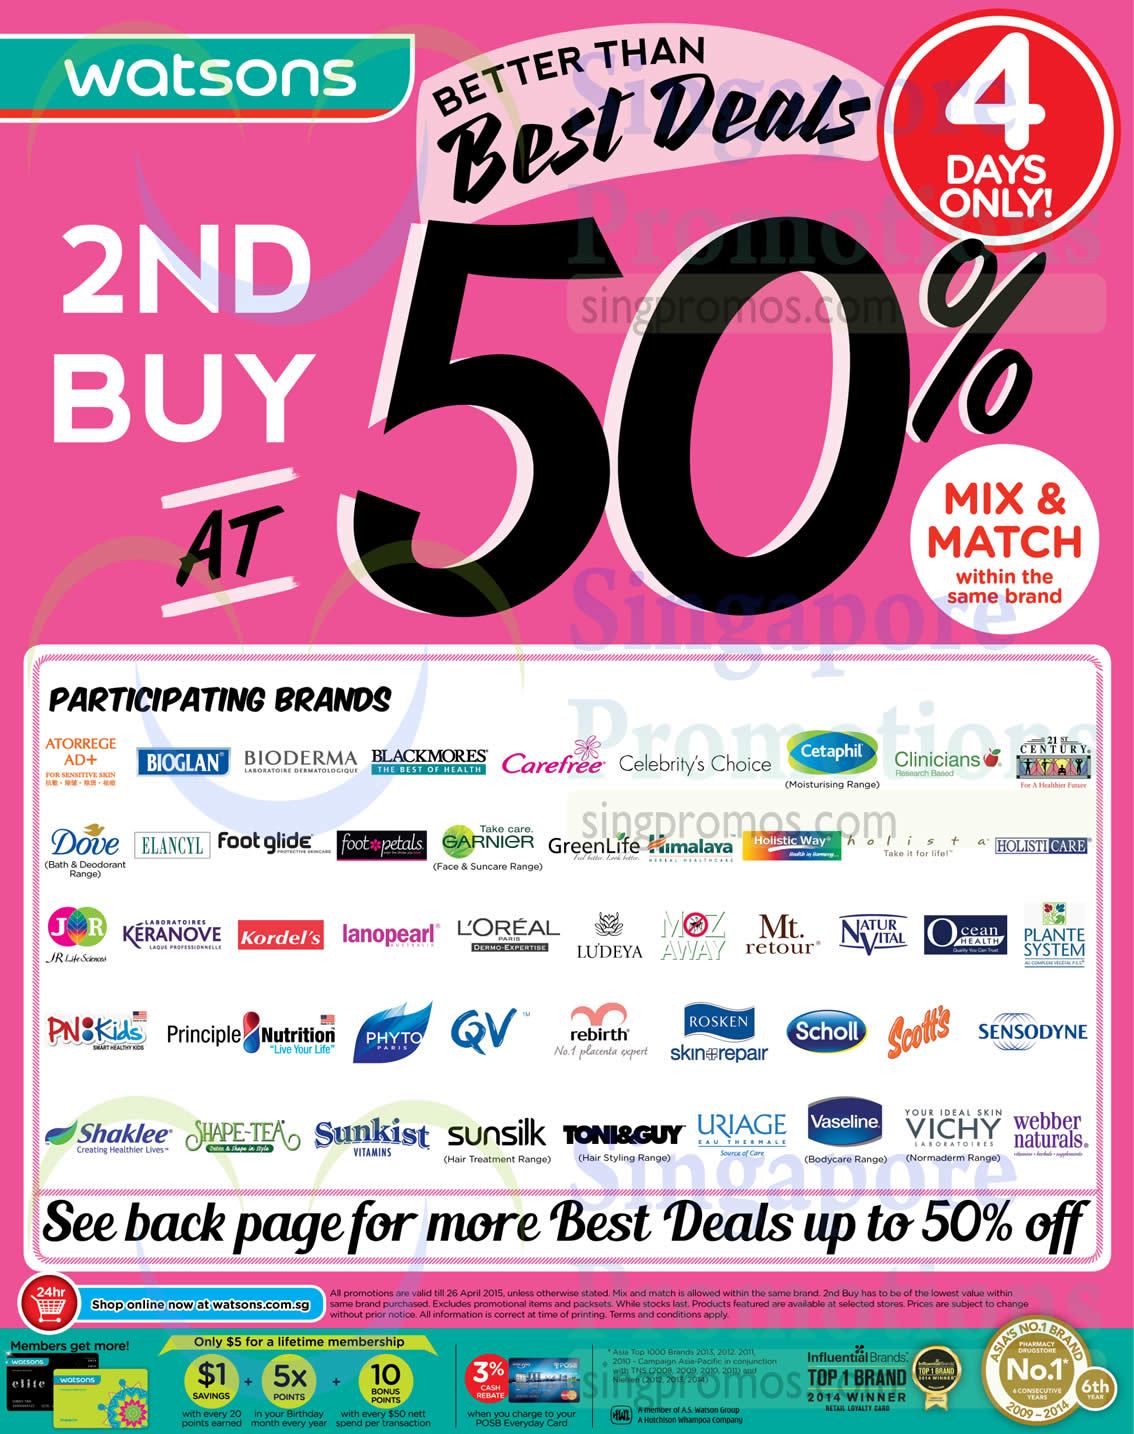 (Till 26 Apr) 2nd Buy at 50 Percent Off, Mix n Match Same Brand, Bioglan, Blackmores , Carefree, Celebrity's Choice, Cetaphil, Dove, Garnier